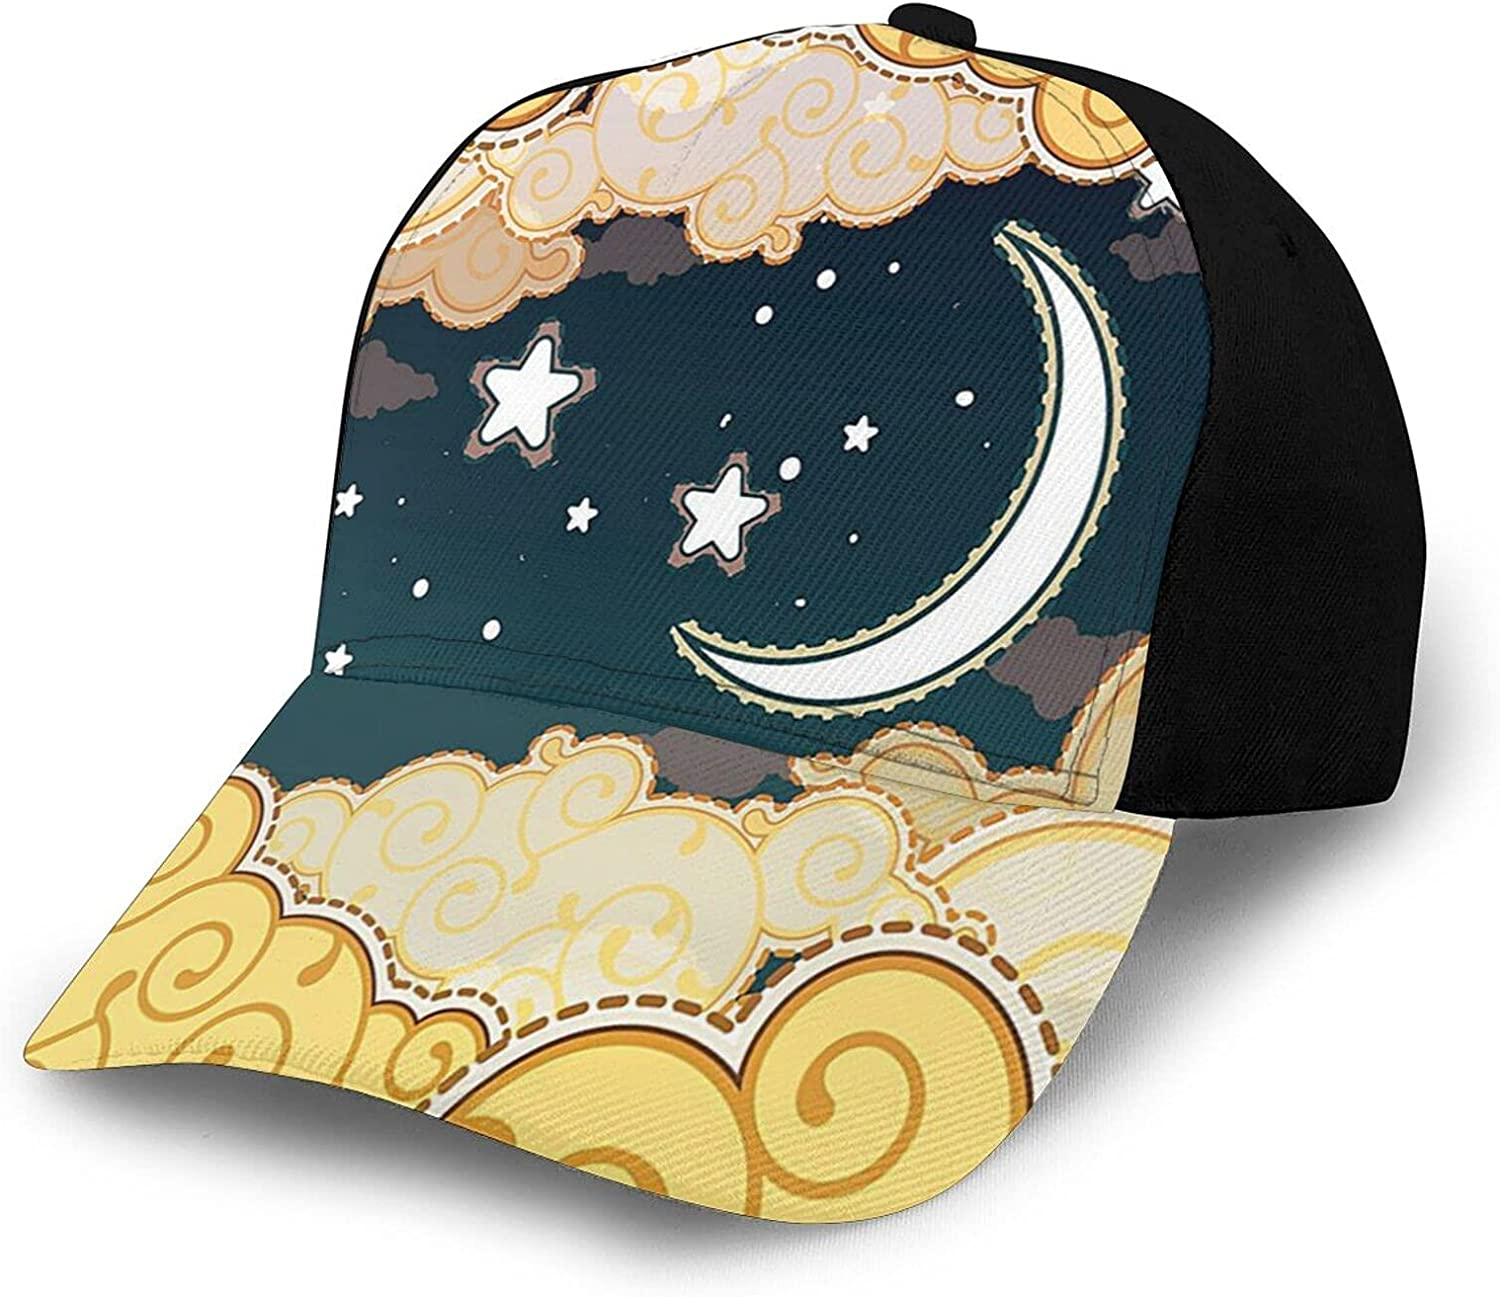 Fantasy House Year-end annual account Decor Collection Cartoon Clou with Style Night Very popular Sky